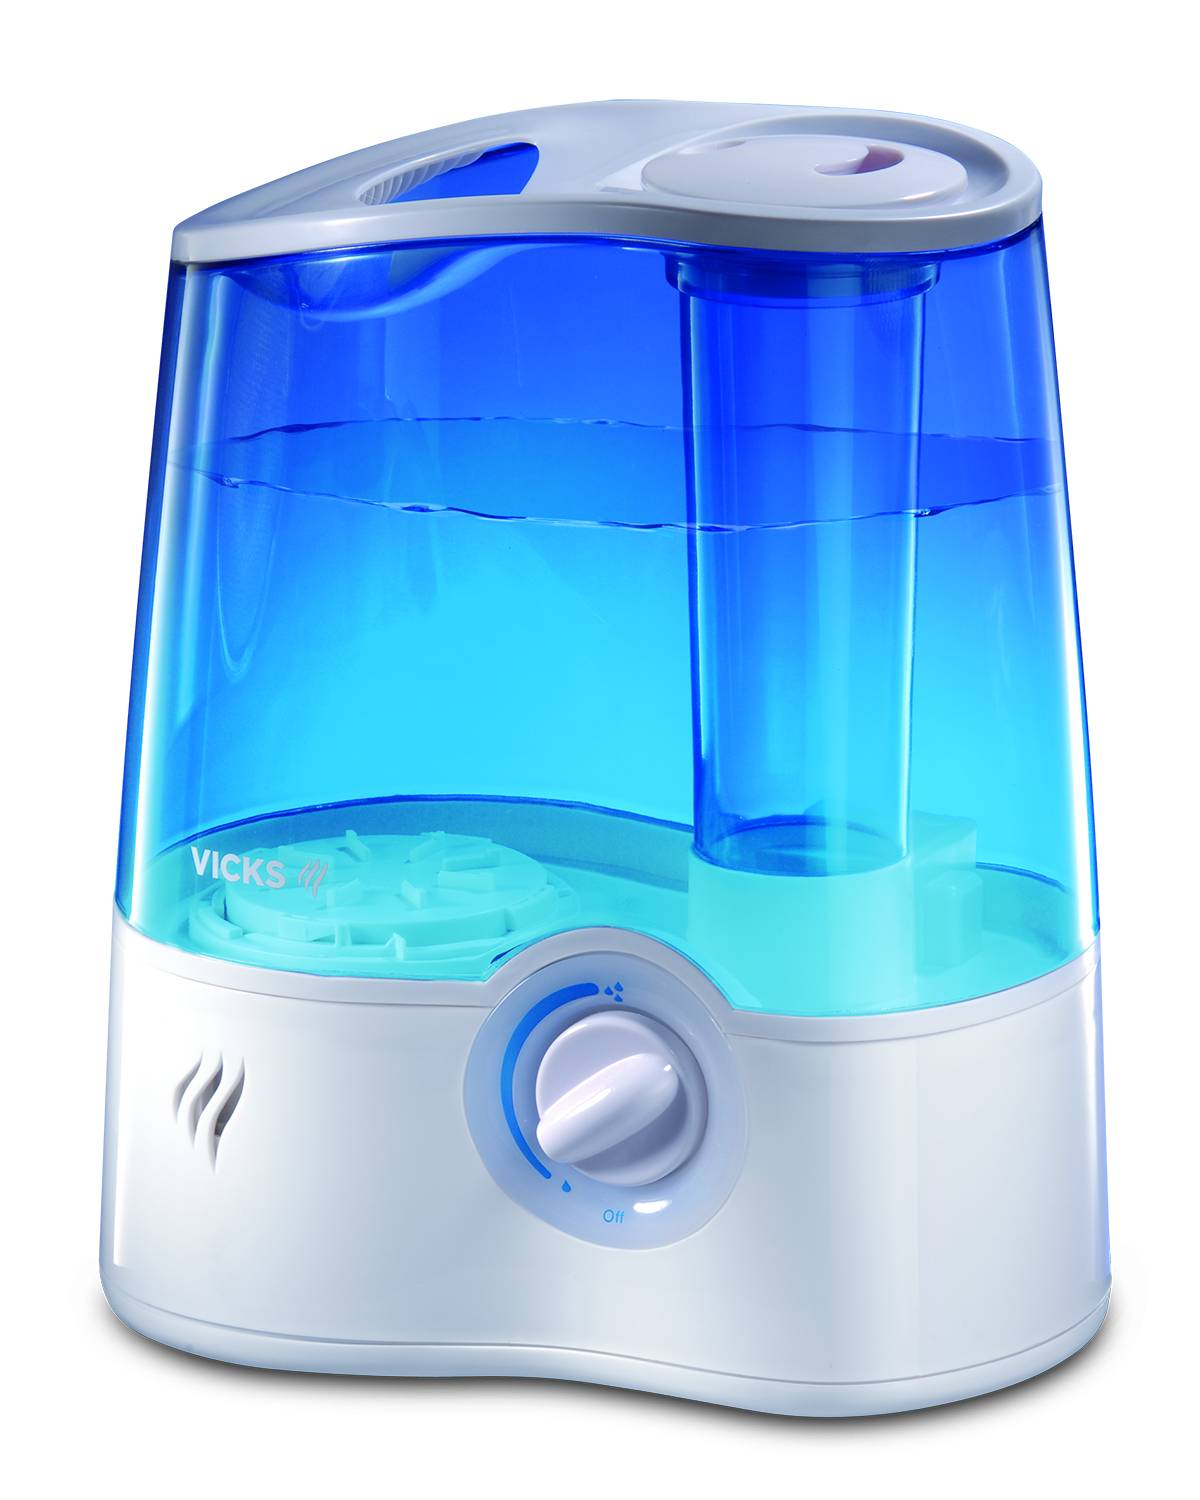 vicks vicks ultrasonic humidifier yes yes 7 88 x 11 38 x 13 50 7 88 x  #069CC5